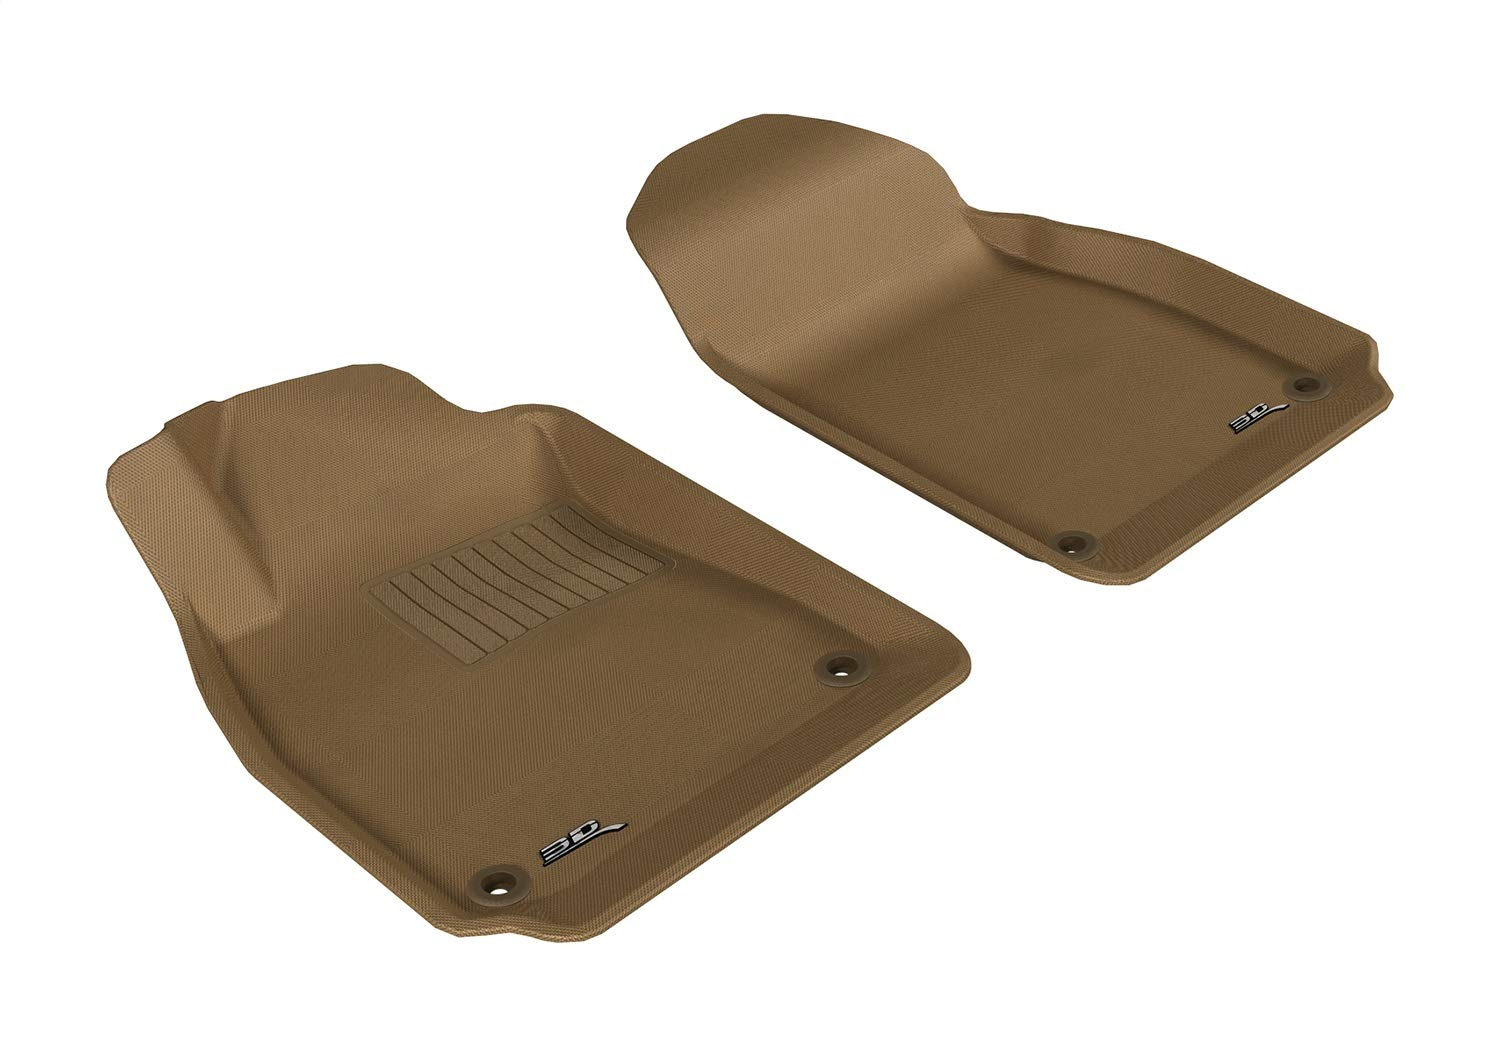 3D MAXpider Front Row Custom Fit All-Weather Floor Mat for Select Saab 9-3 Models - Kagu Rubber (Tan)